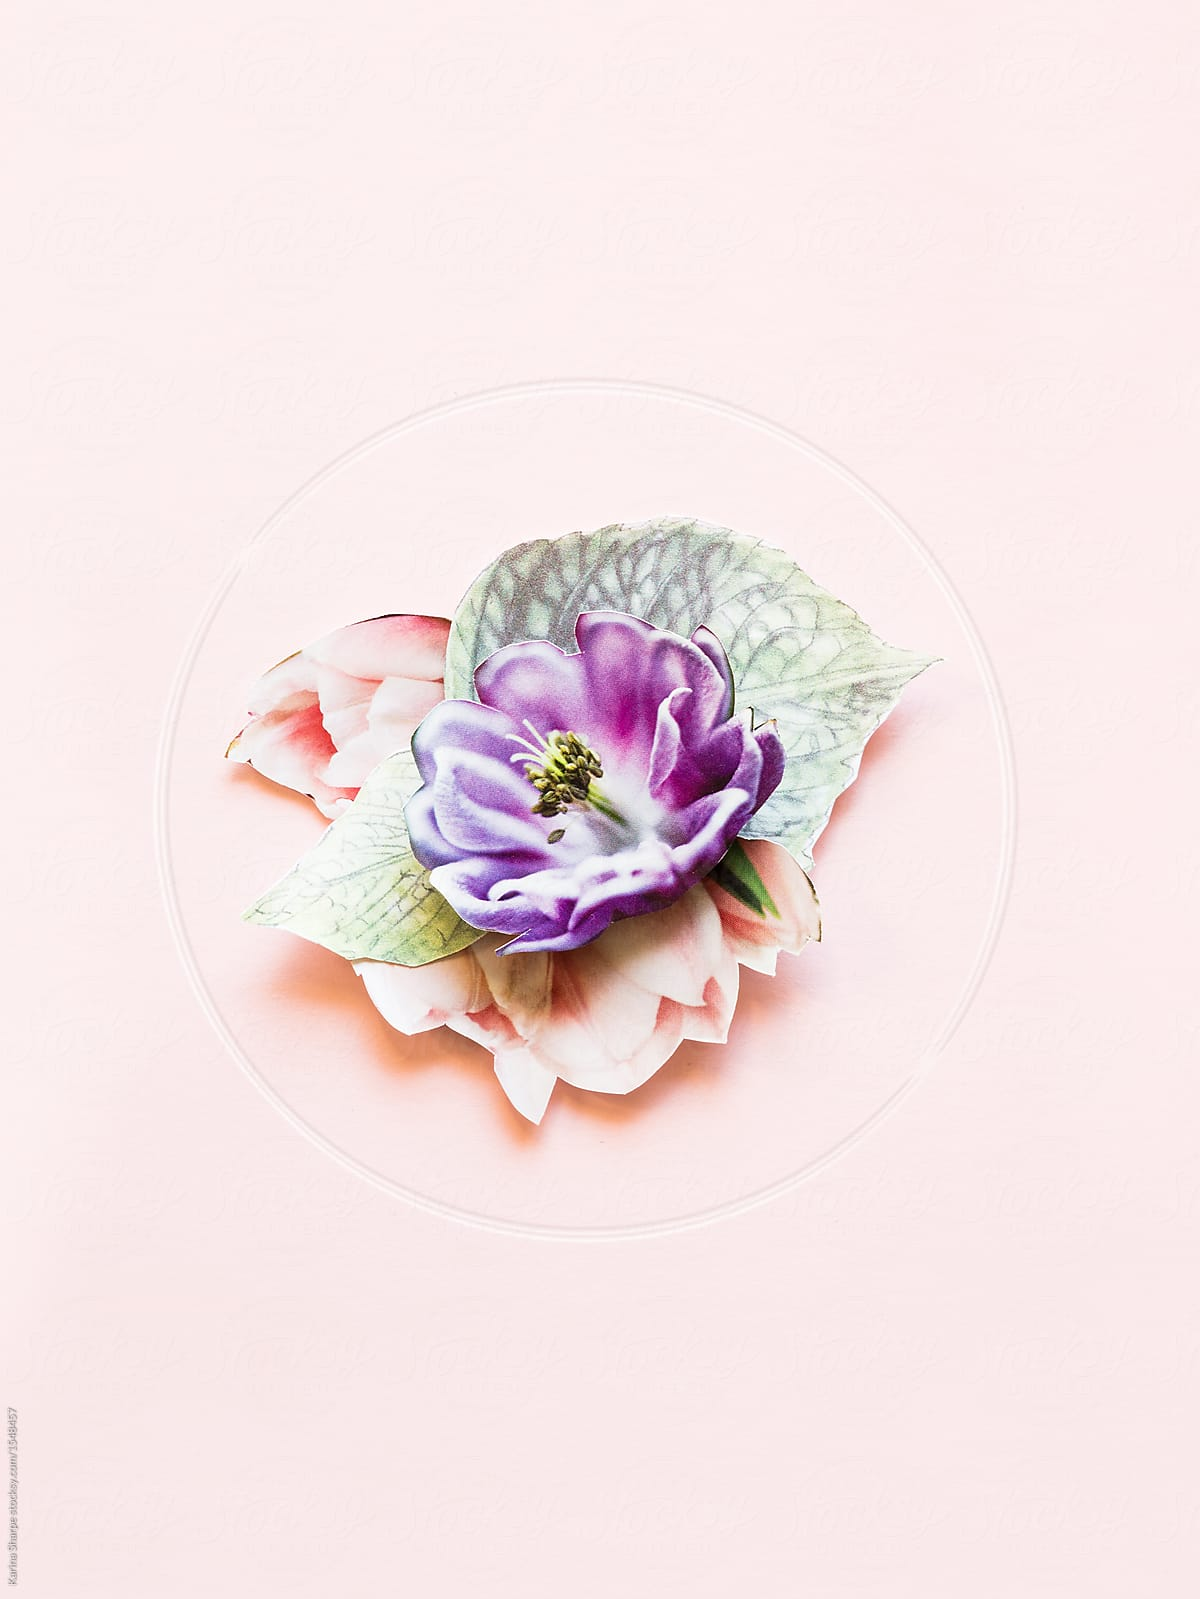 Bouquet Of Paper Flowers In Pinks And Purples On A Pink Background